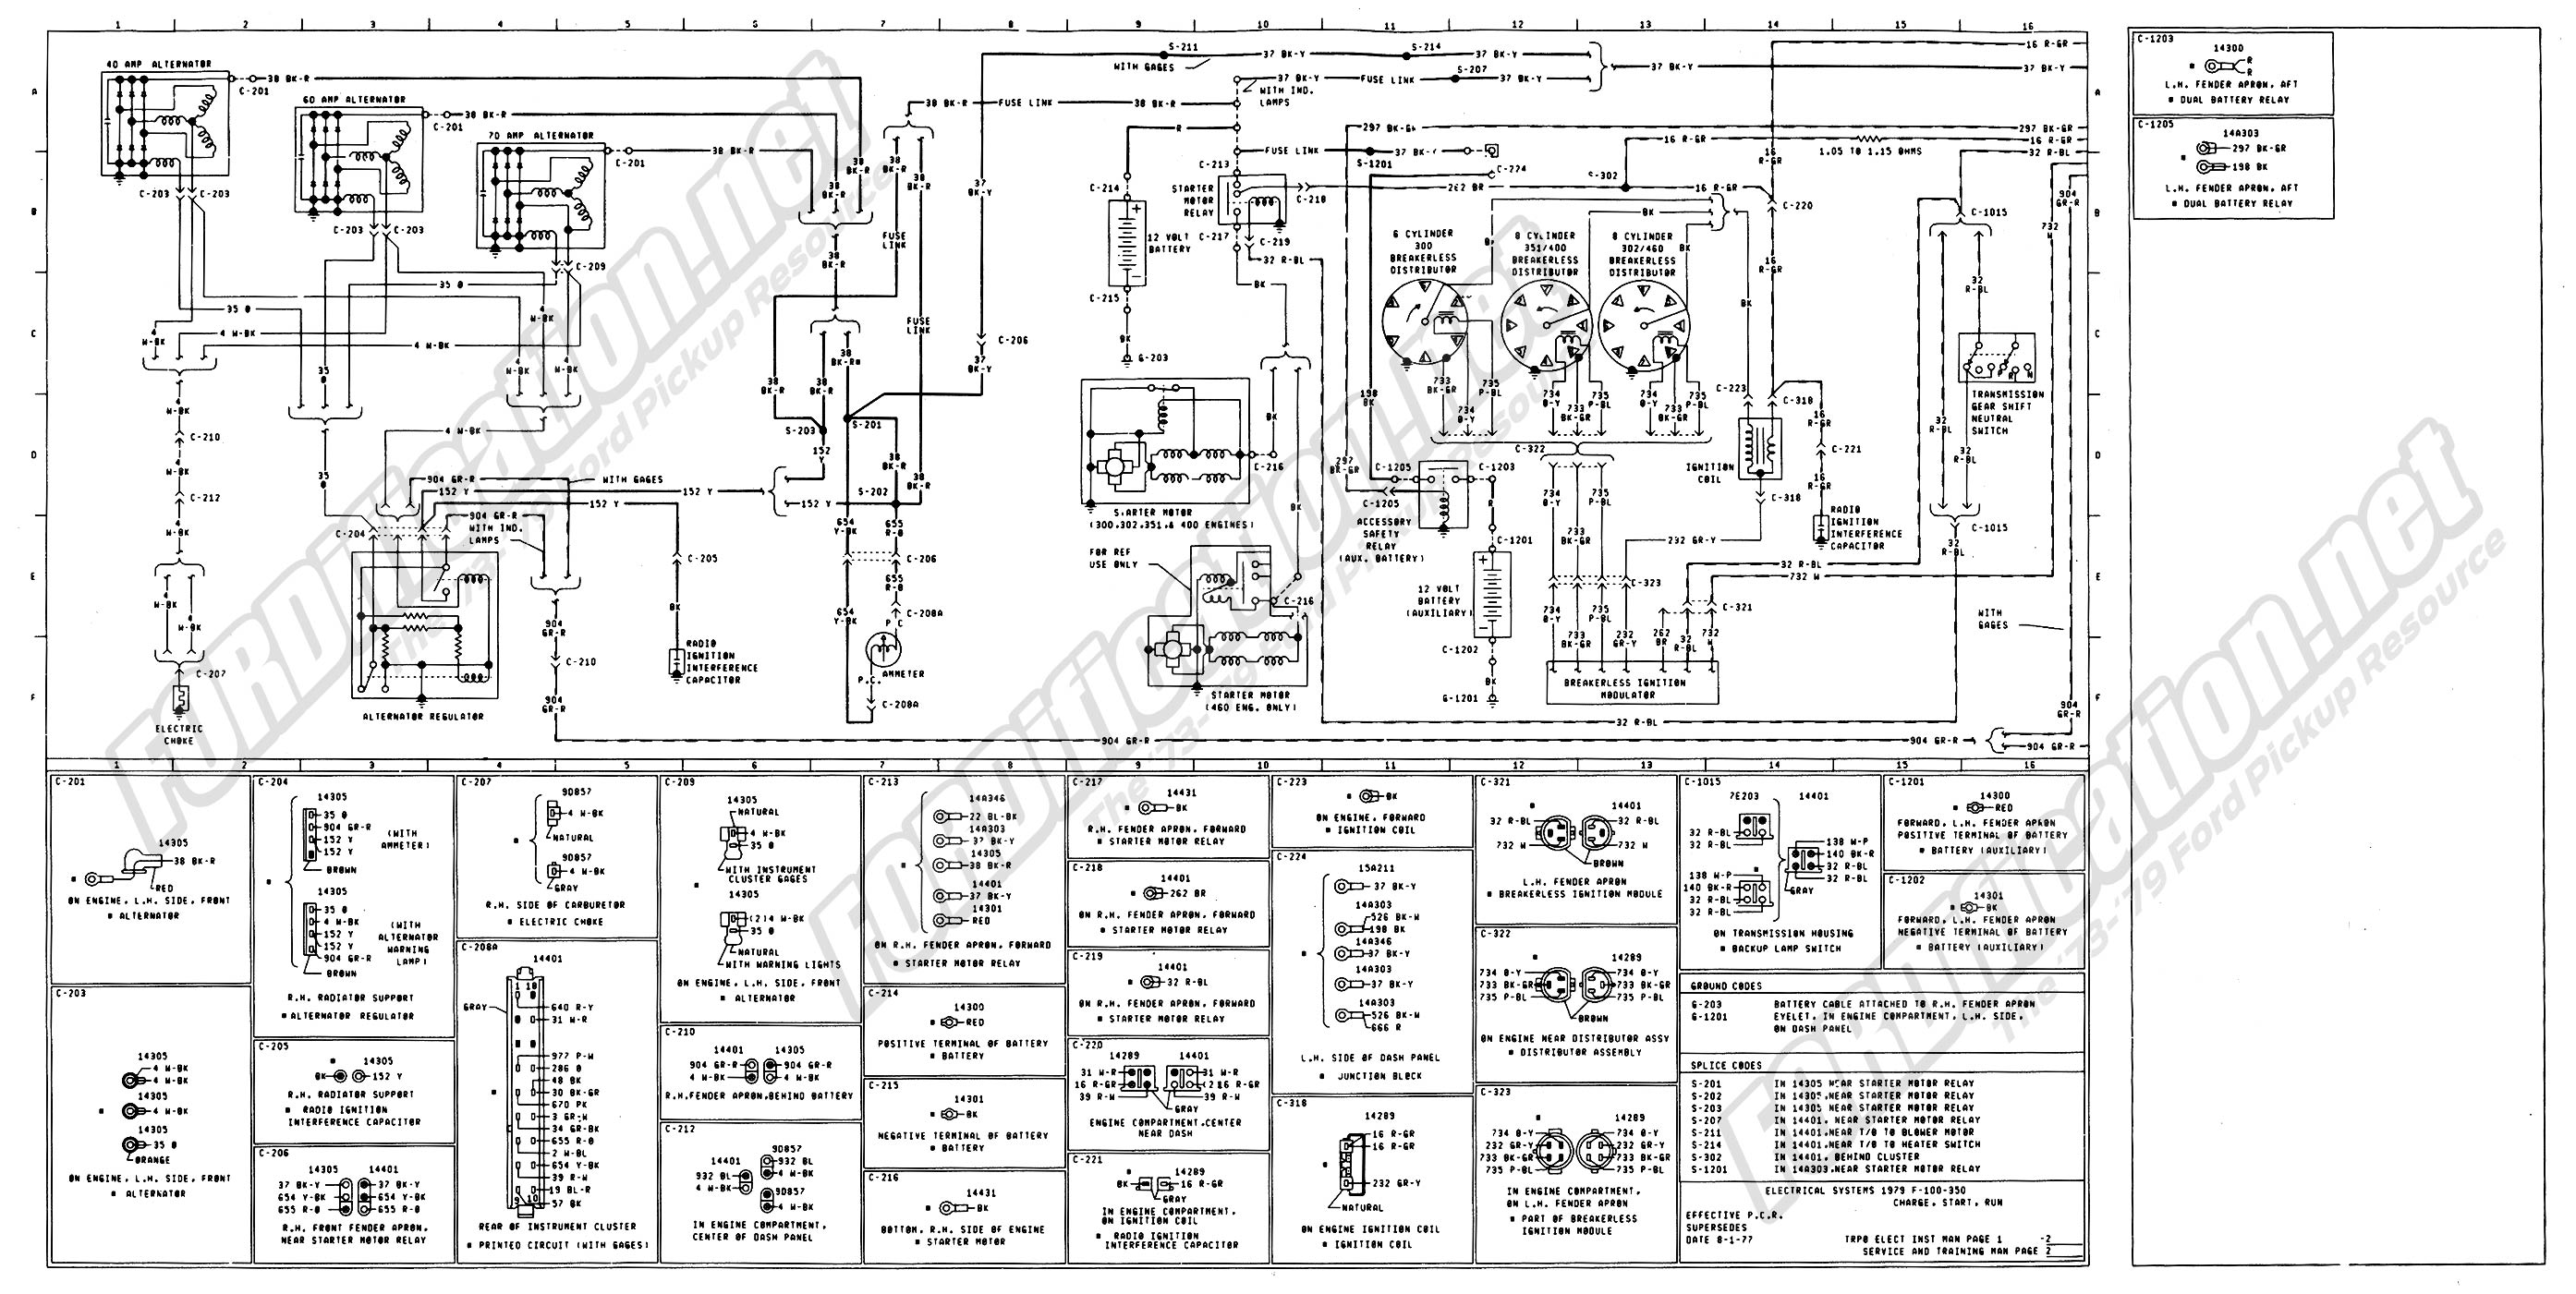 wiring_79master_2of9 1973 1979 ford truck wiring diagrams & schematics fordification net 1979 ford radio wiring diagram at n-0.co